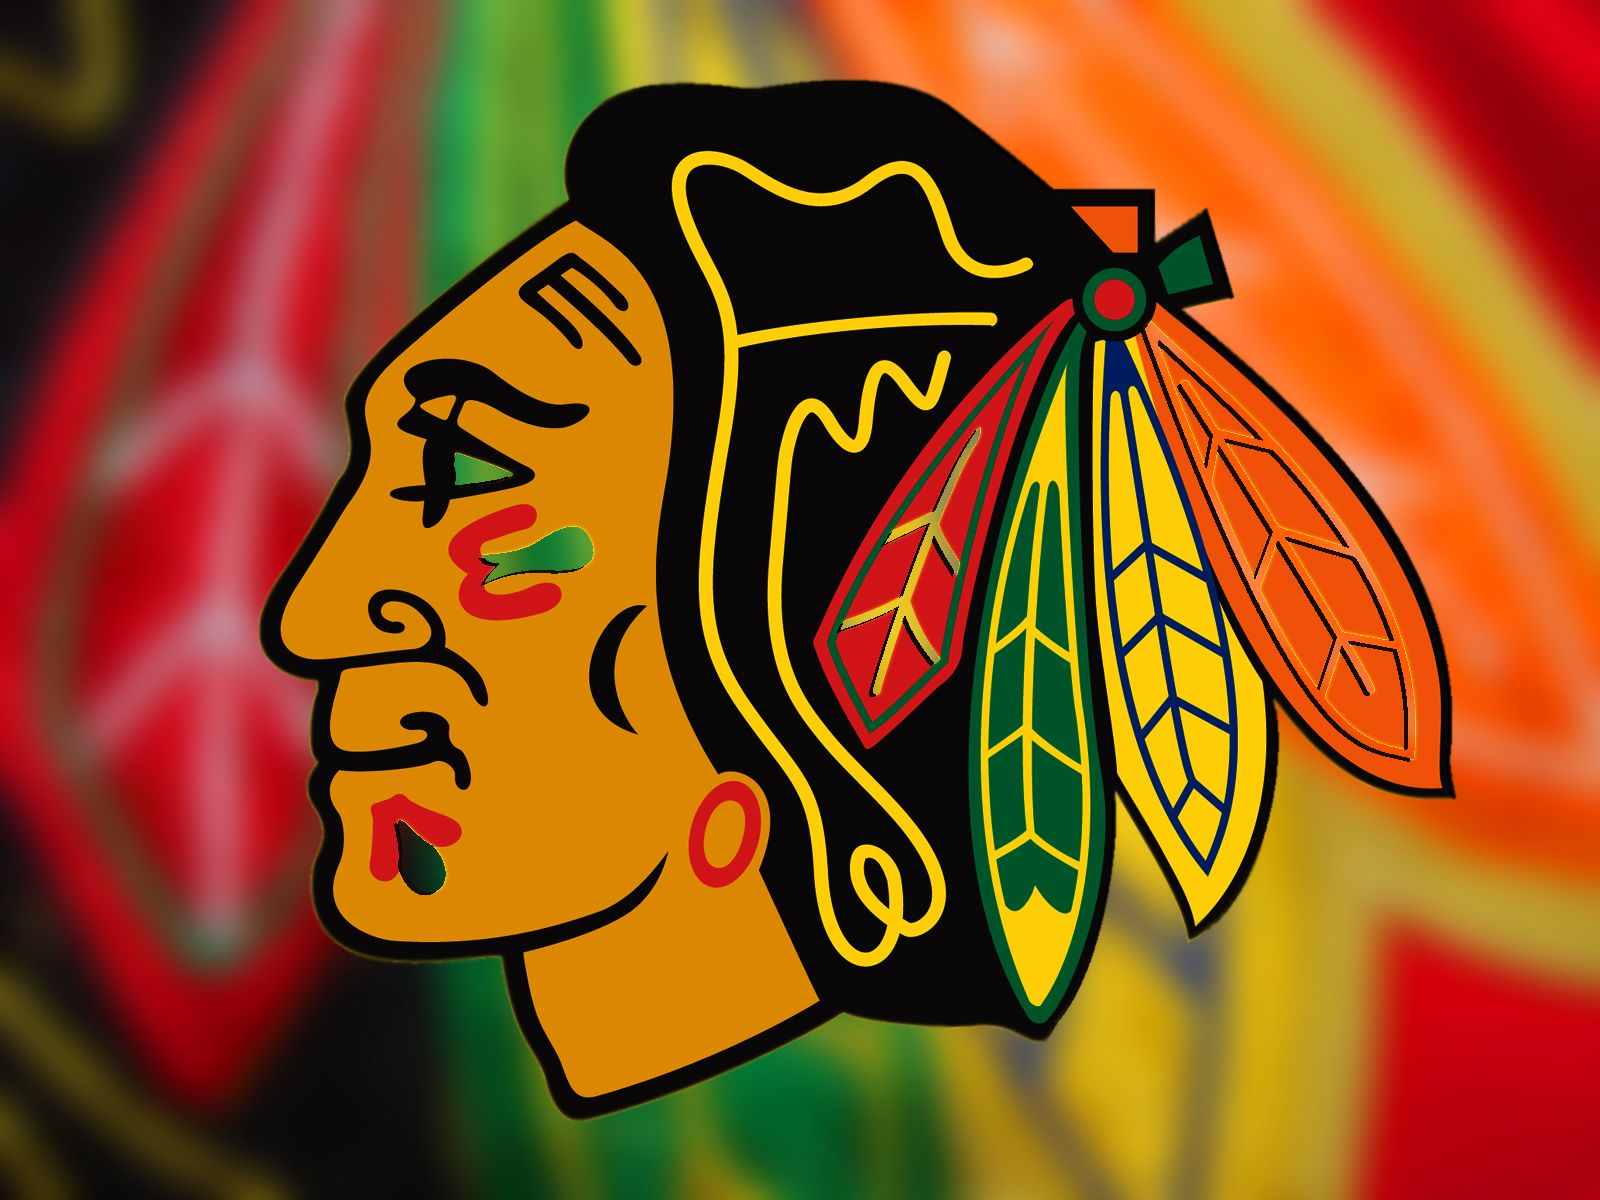 Chicago Blackhawks Background Wallpapers Free Download